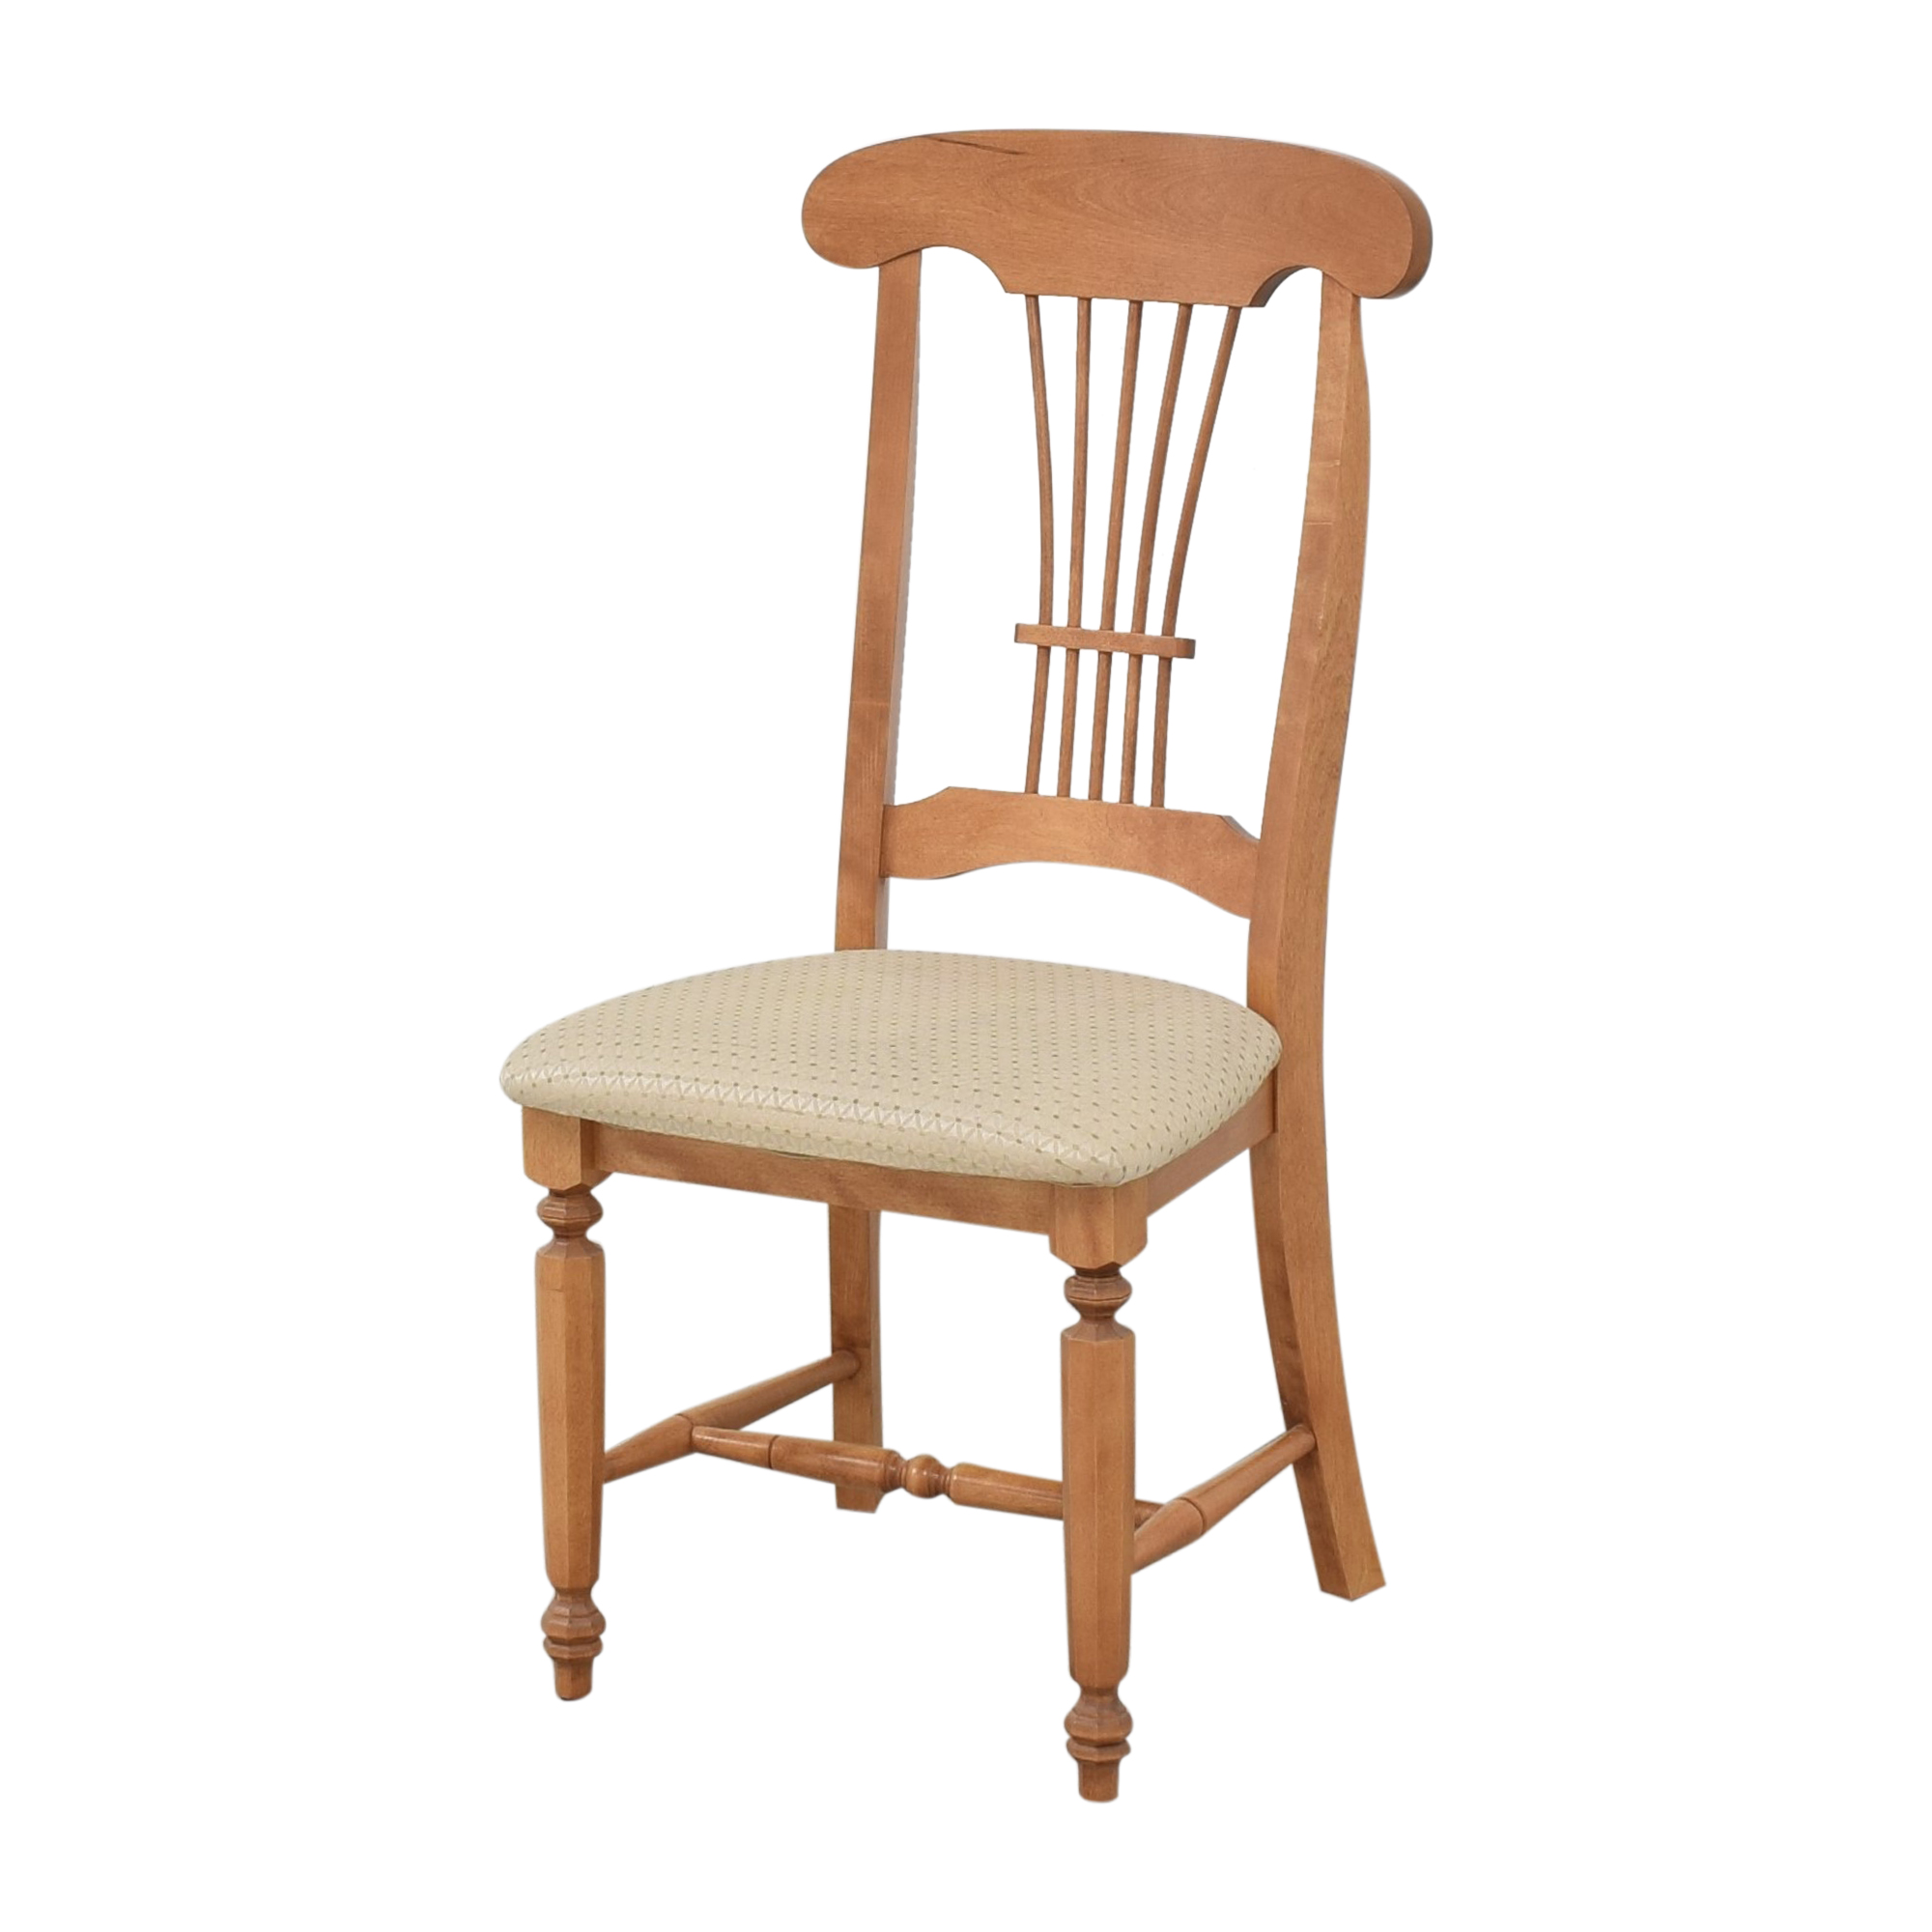 Canadel Canadel Upholstered Dining Chairs Chairs